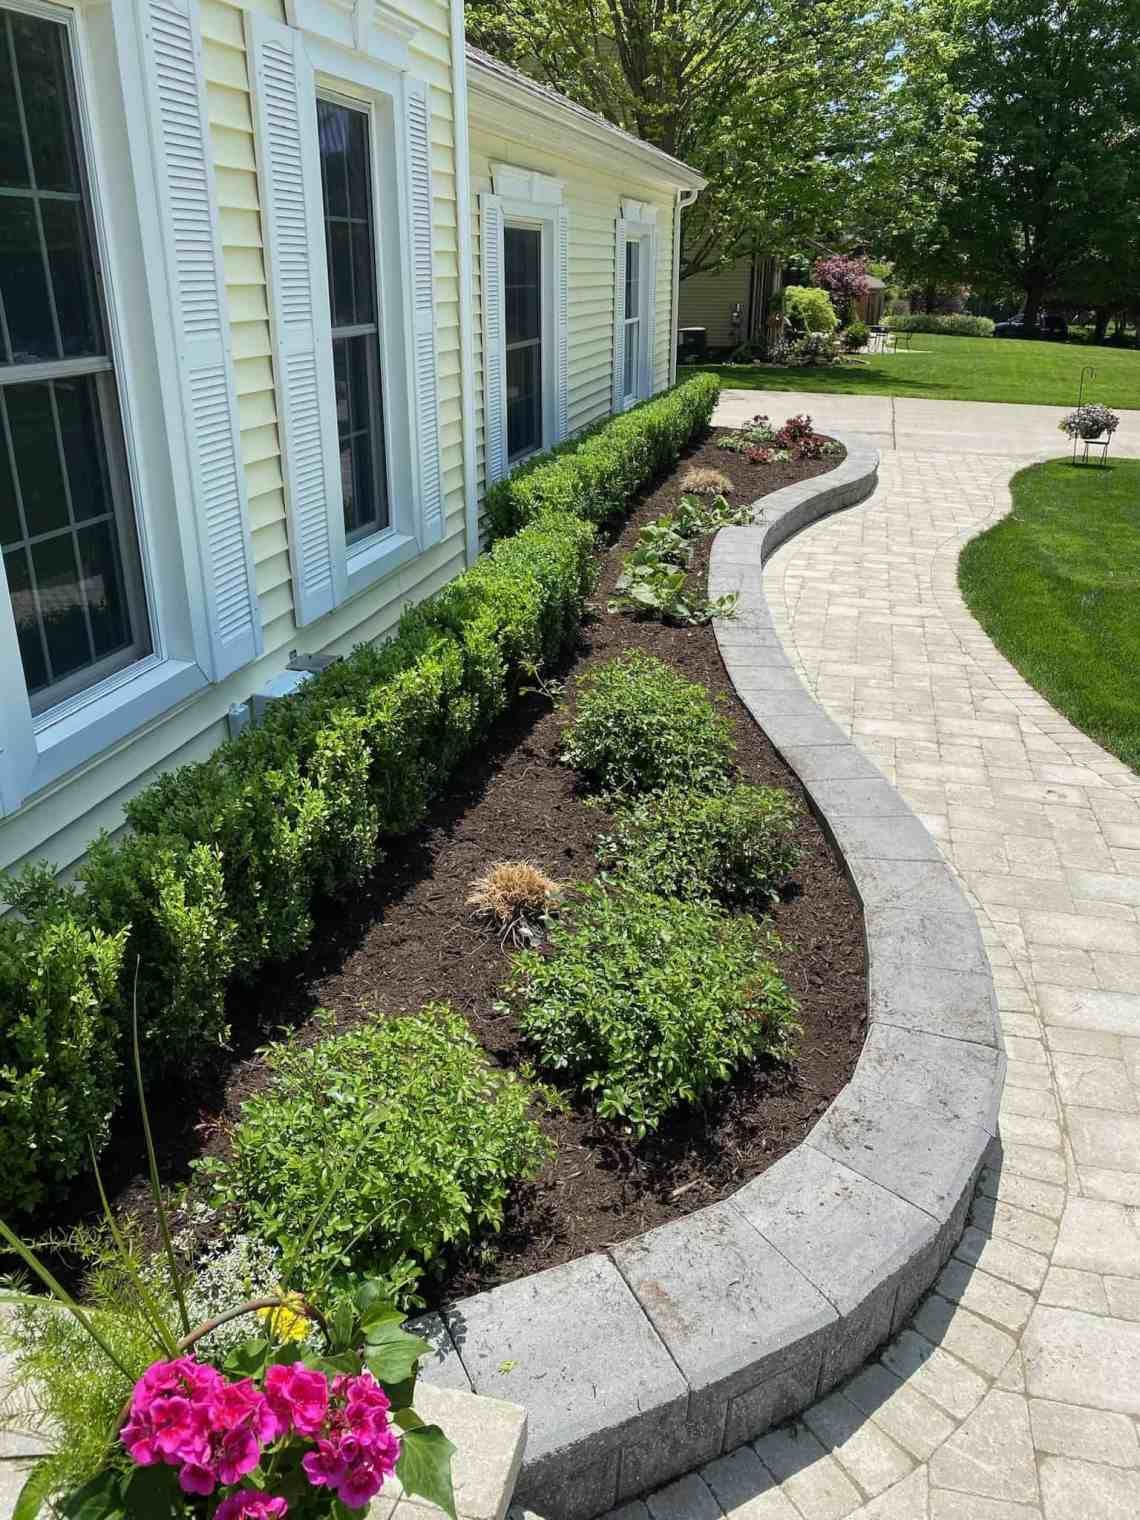 Winding walkways, shrubs, perennials, and a container garden welcome guests at a residence by Highland Horticultural Services